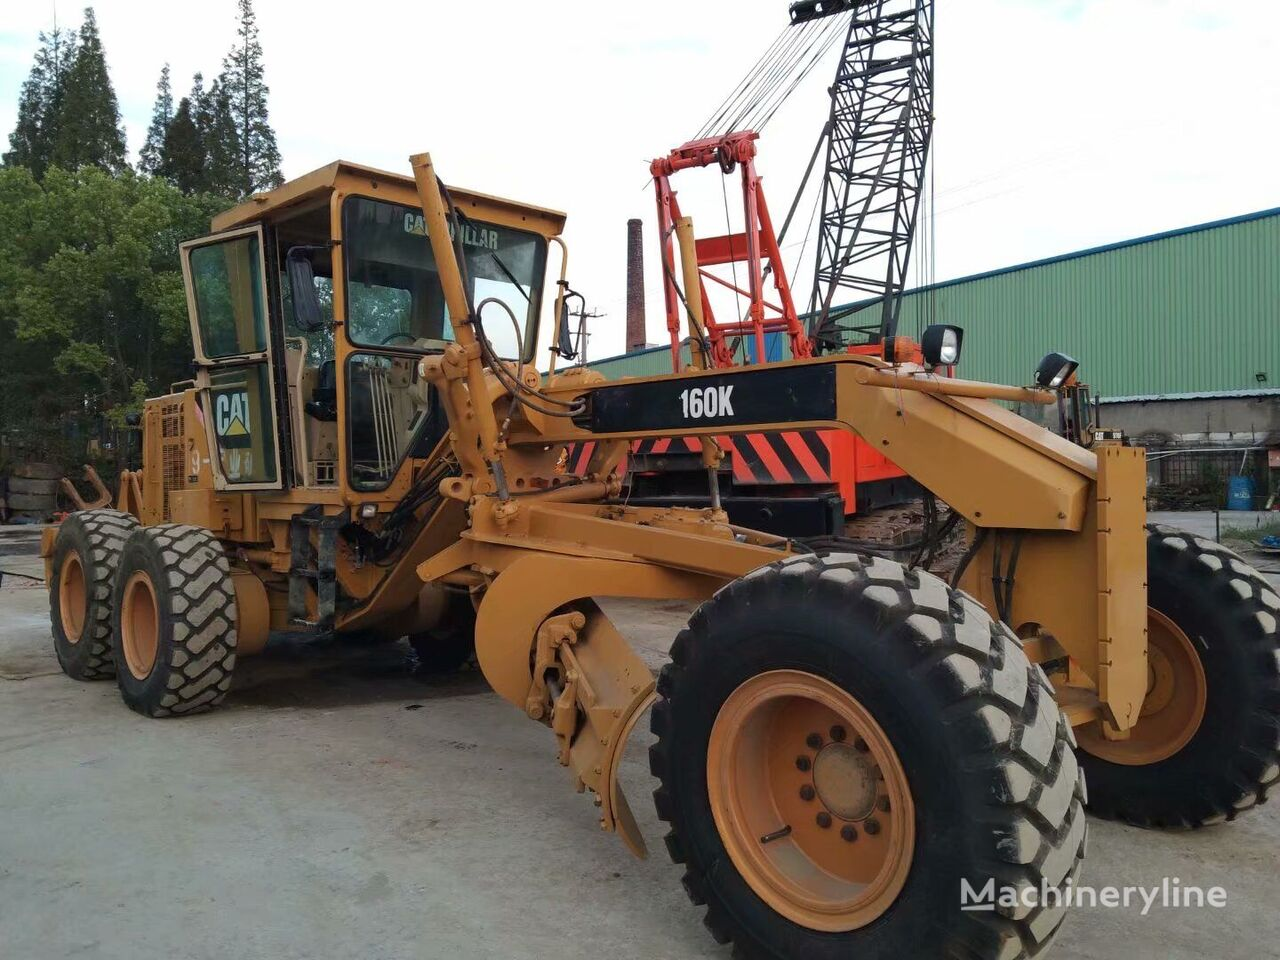 CATERPILLAR 160K motoniveladora